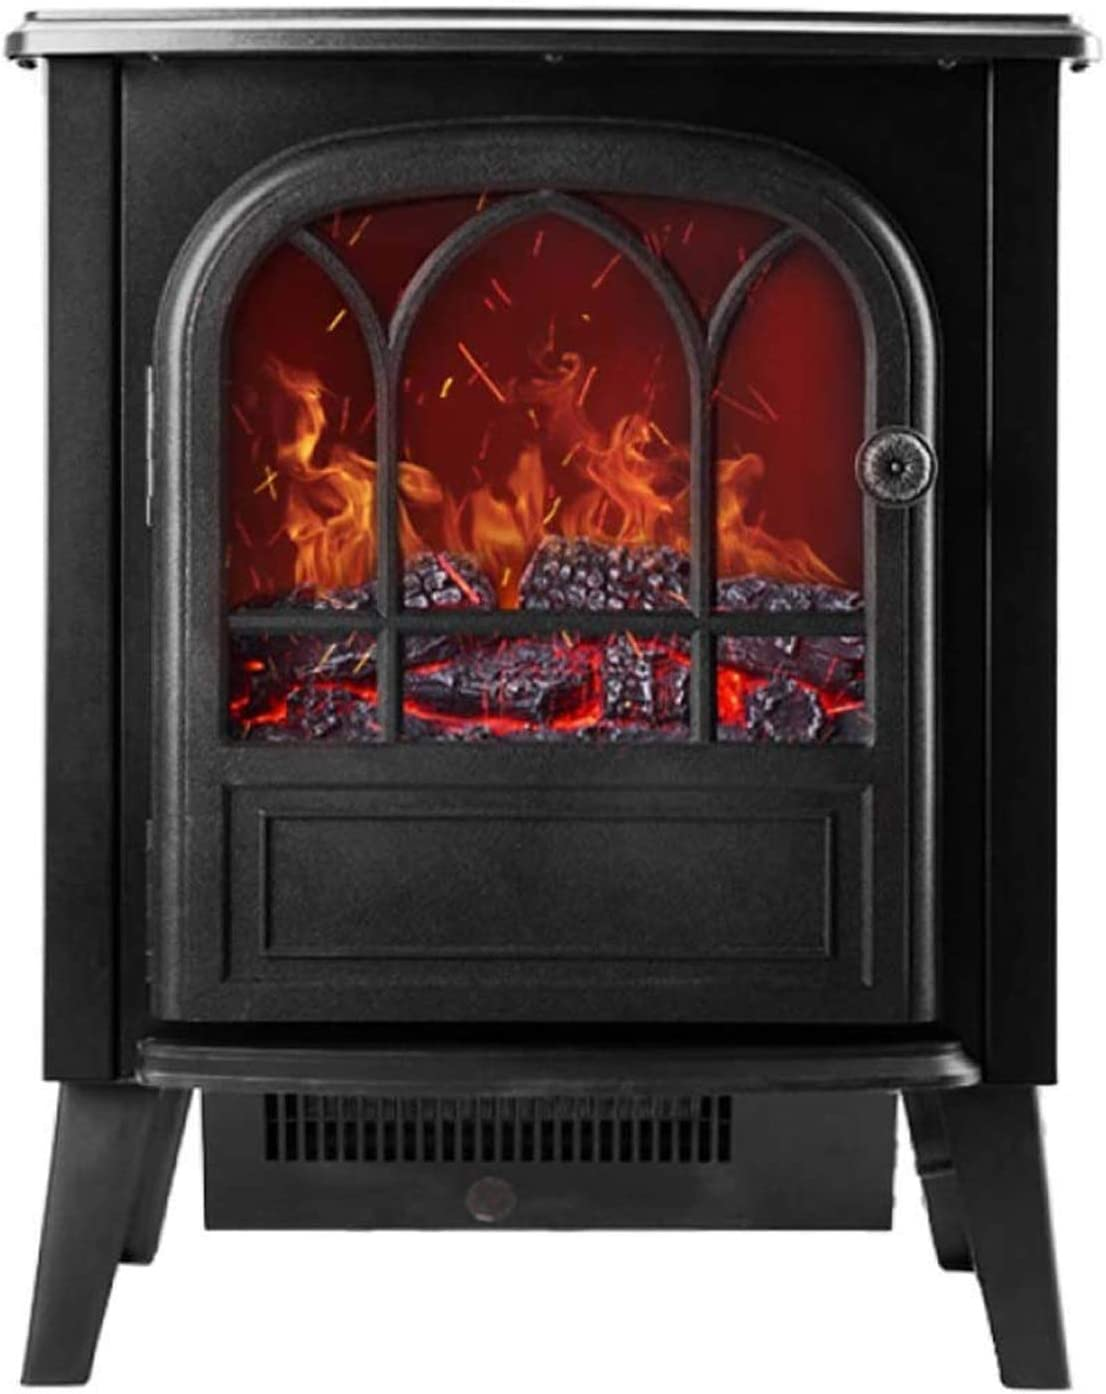 Wgwioo Electric Fire Stove Heater Fireplace, 3D Realistic Log Wood Burning Flame Effect, Free Standing Space Heater 2 Heat Settings 900W/1800W,Black